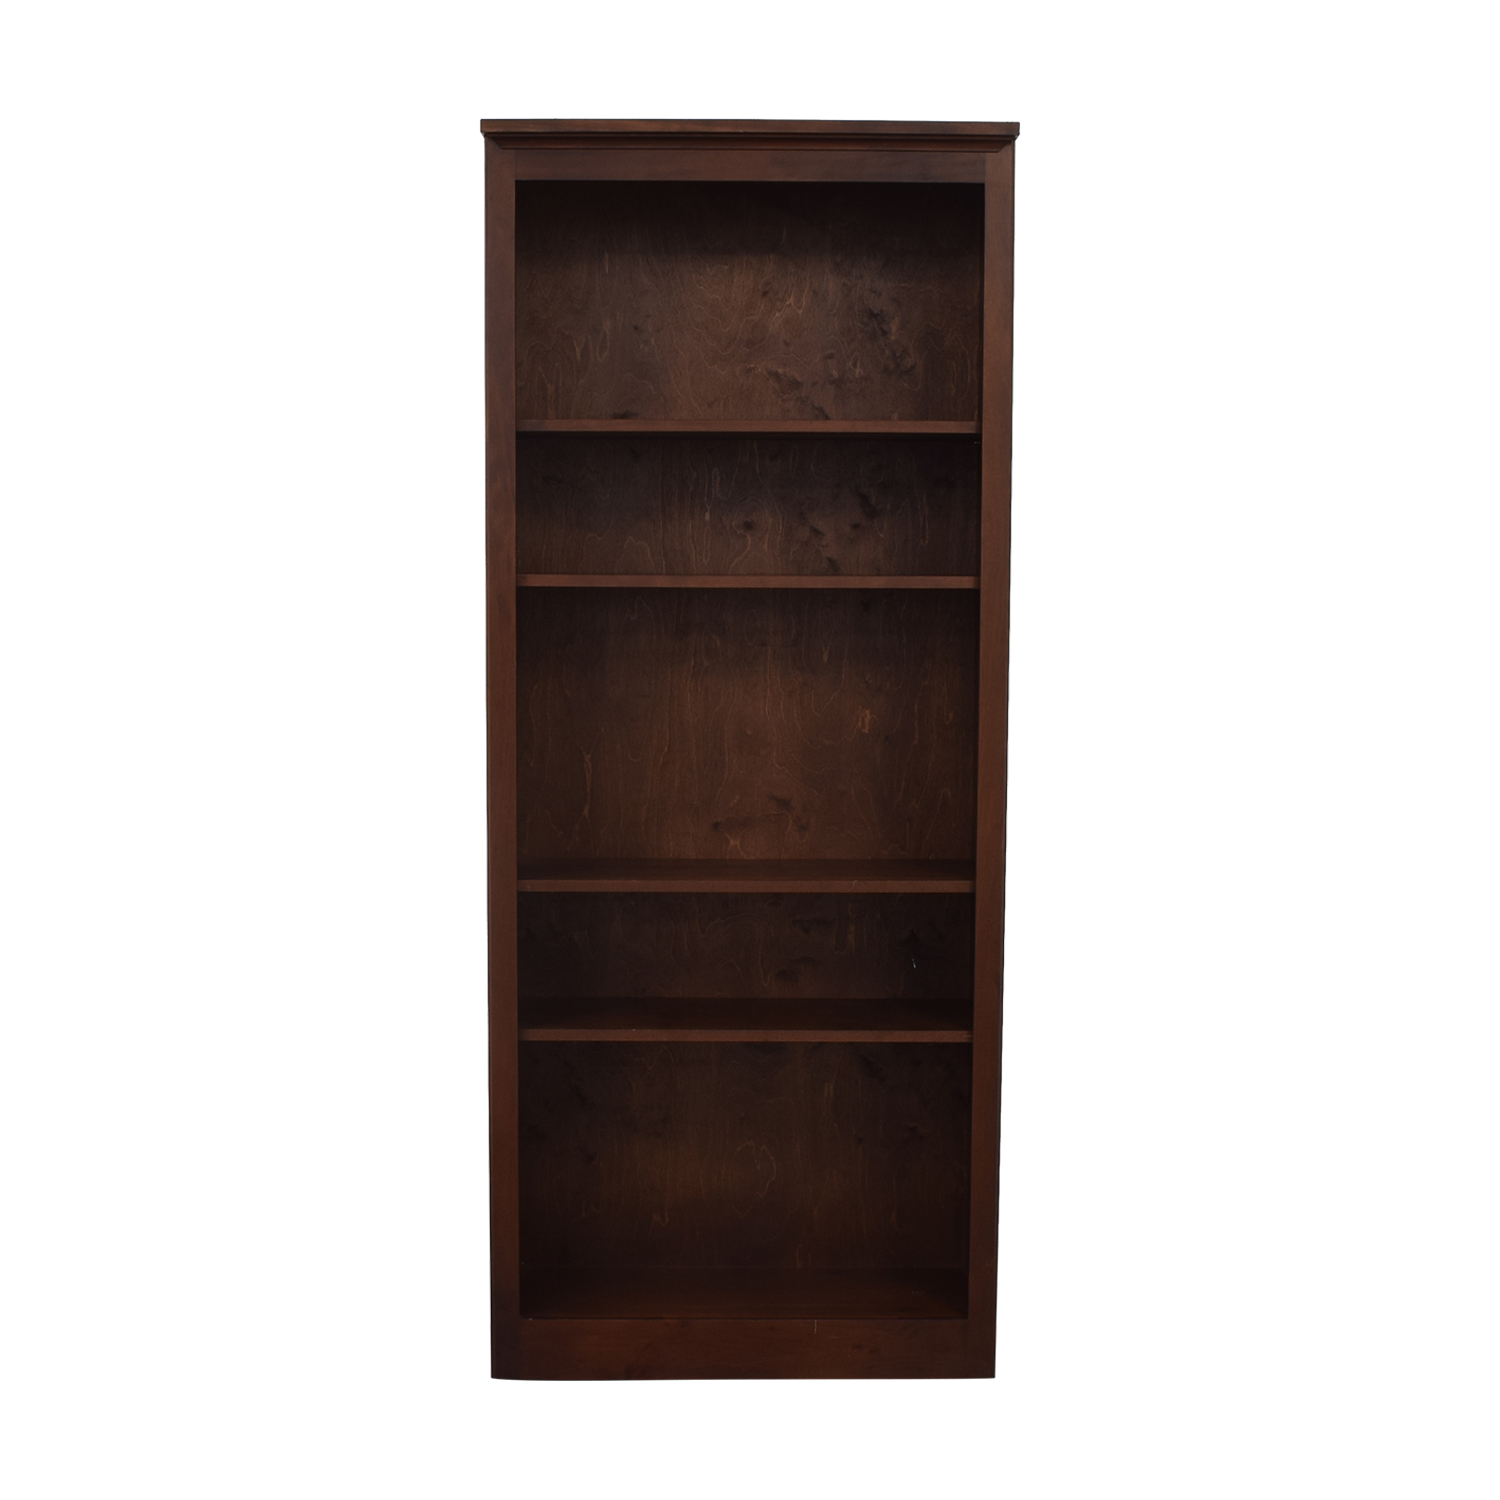 shop Crate & Barrel Veneer Bookshelf Crate & Barrel Storage